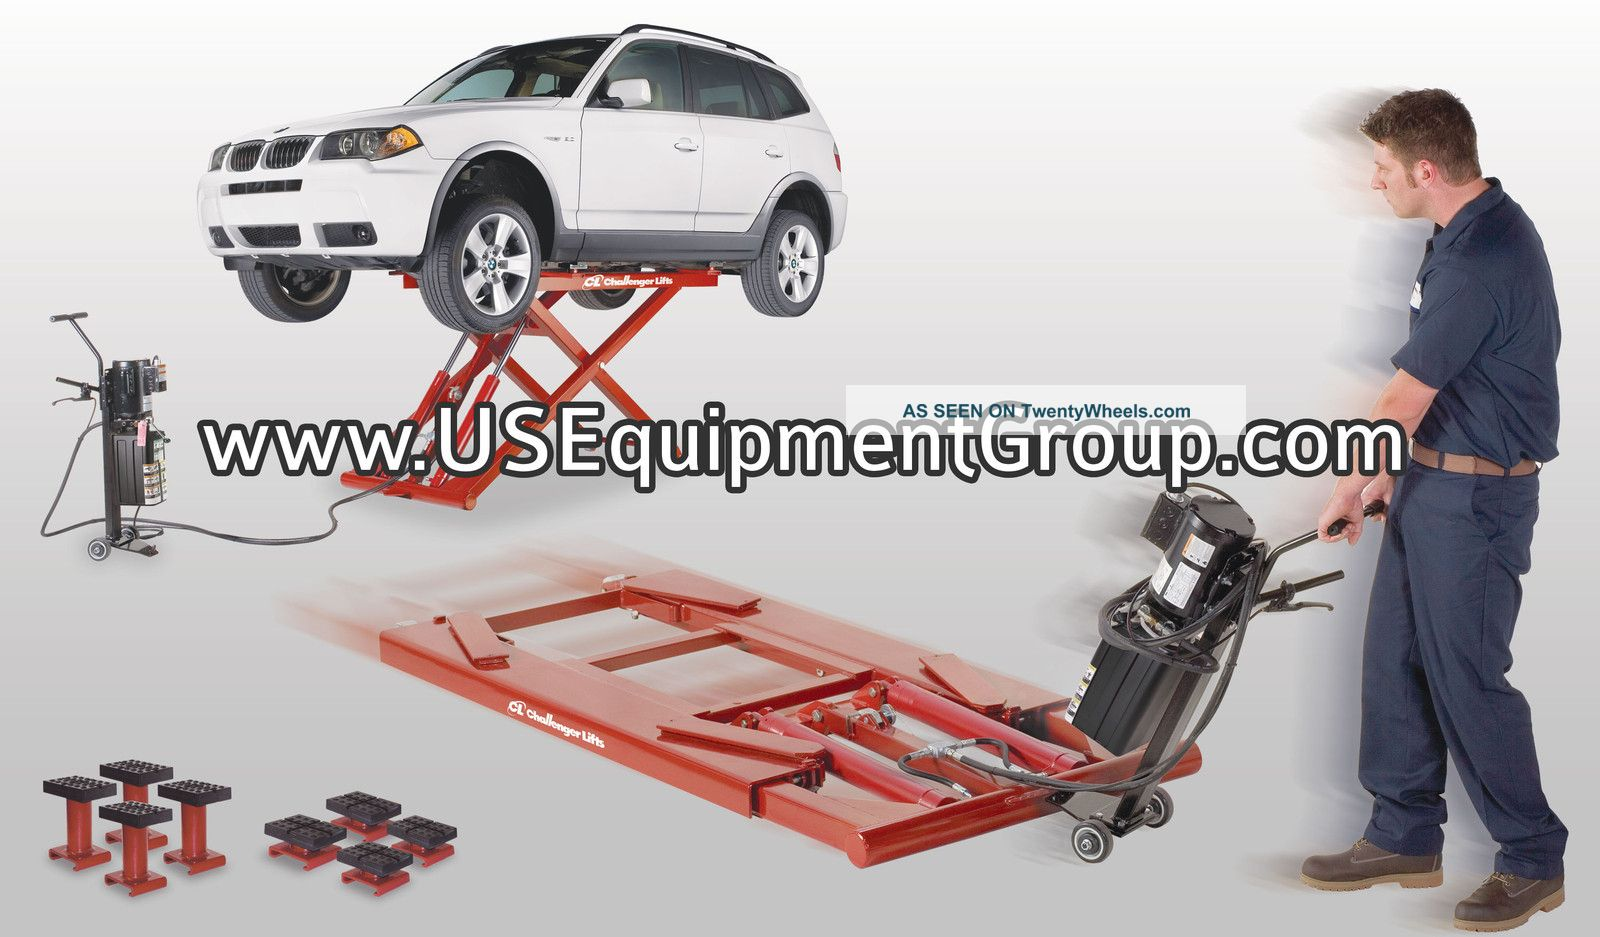 Portable Car Lifts For Home Garage Home Car Lift Supply